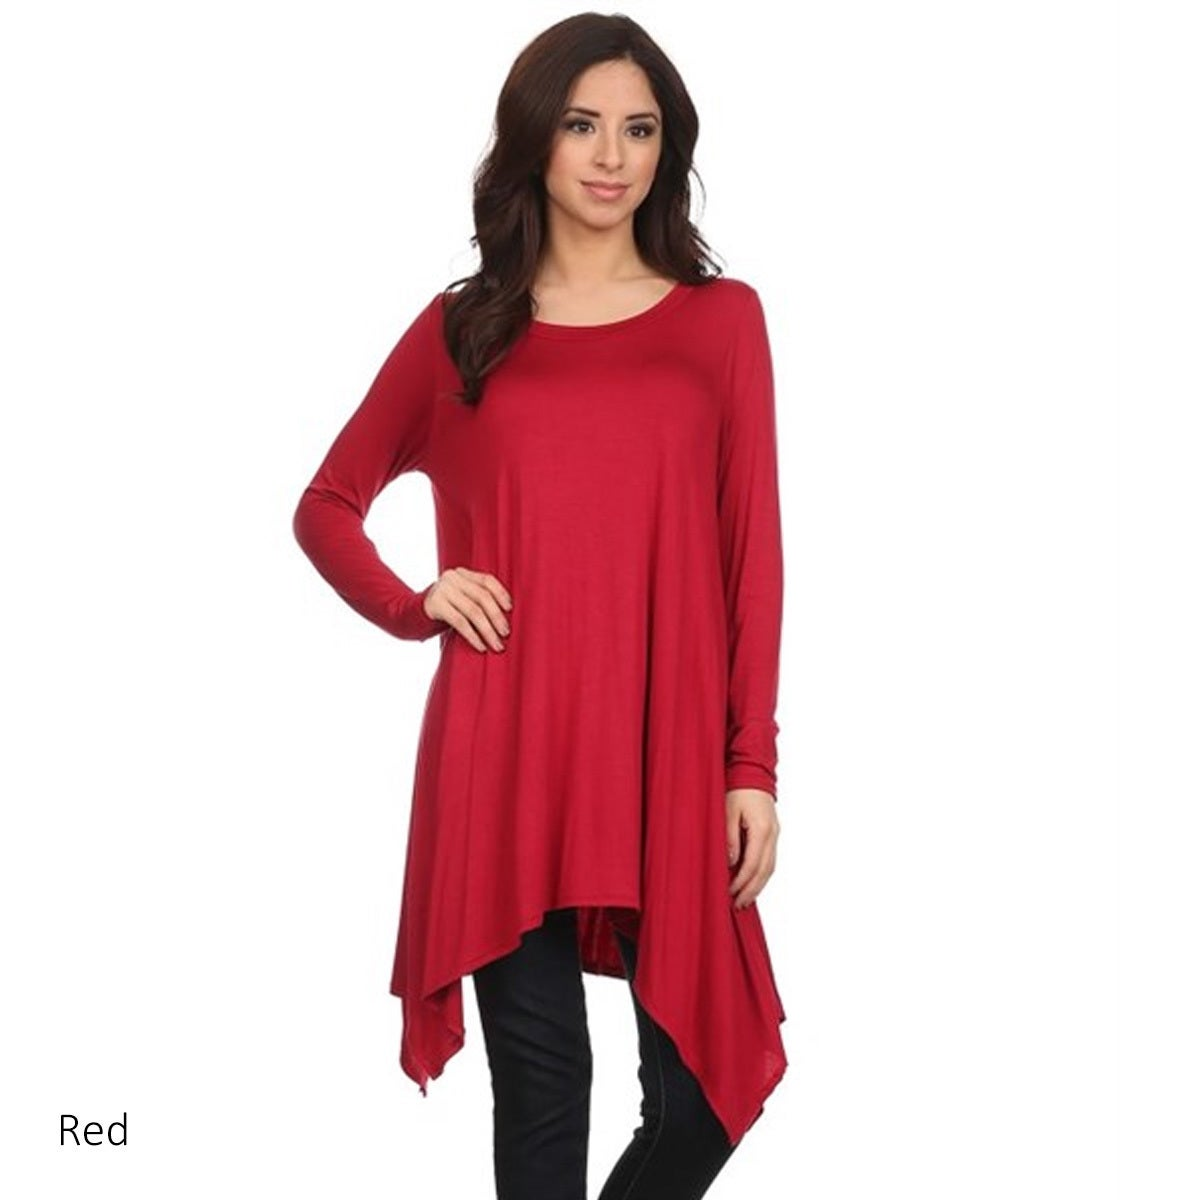 6aaab3823e5 Shop Women's Solid Color Polyester and Spandex Oversize Tunic - On Sale -  Free Shipping On Orders Over $45 - Overstock - 13189463